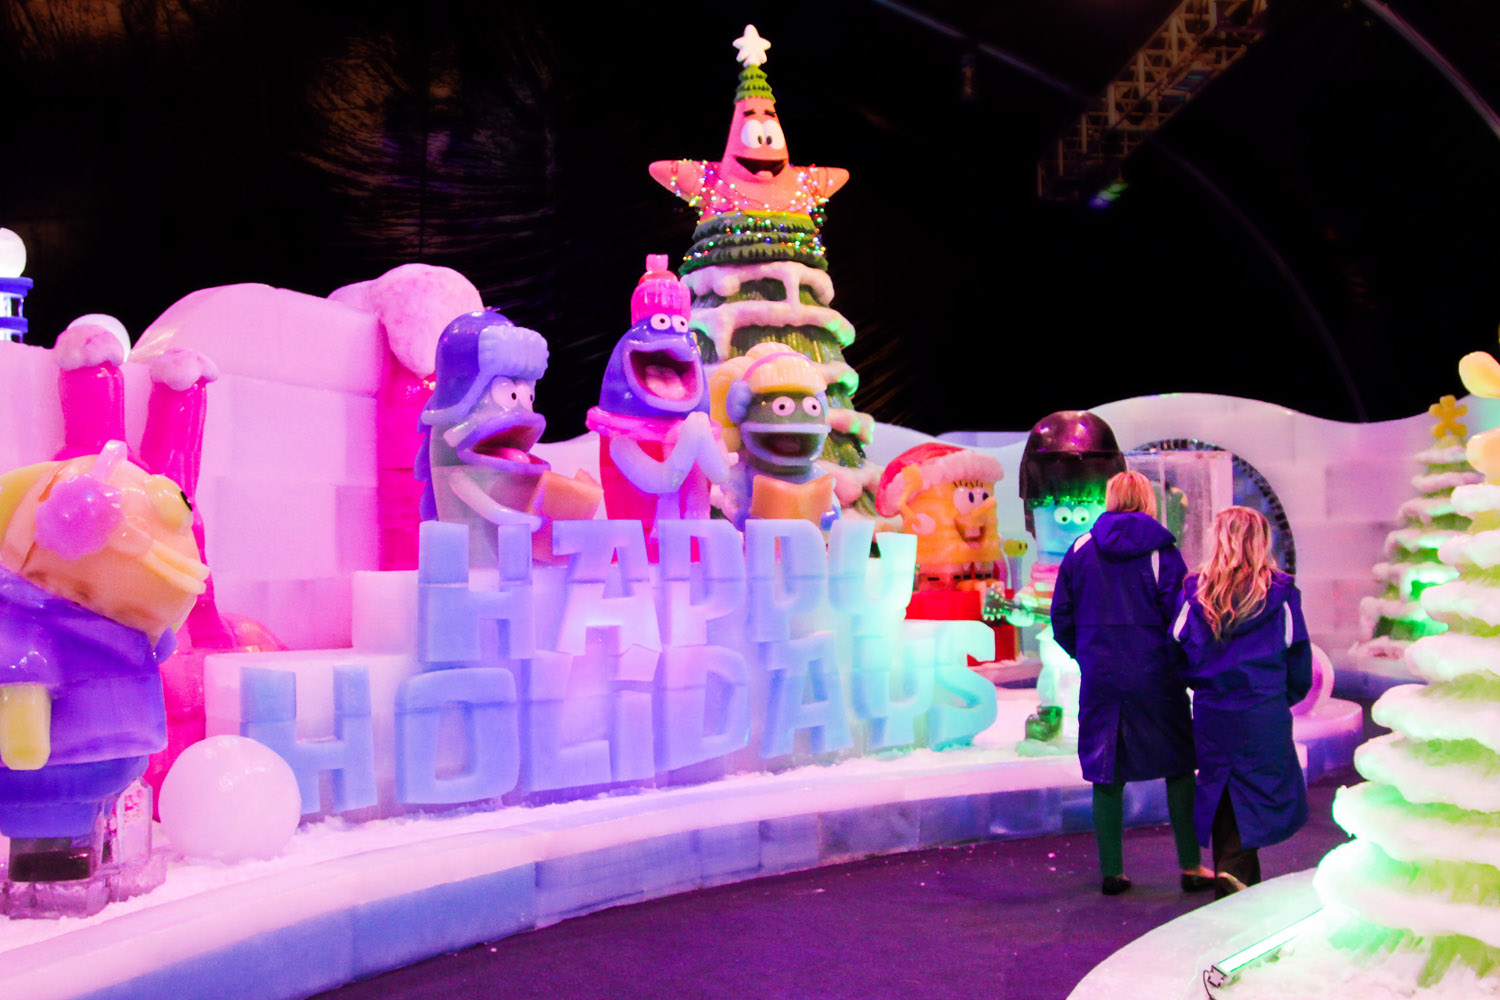 Moody Gardens Festival of Lights and NEW Ice Land Ice Sculptures